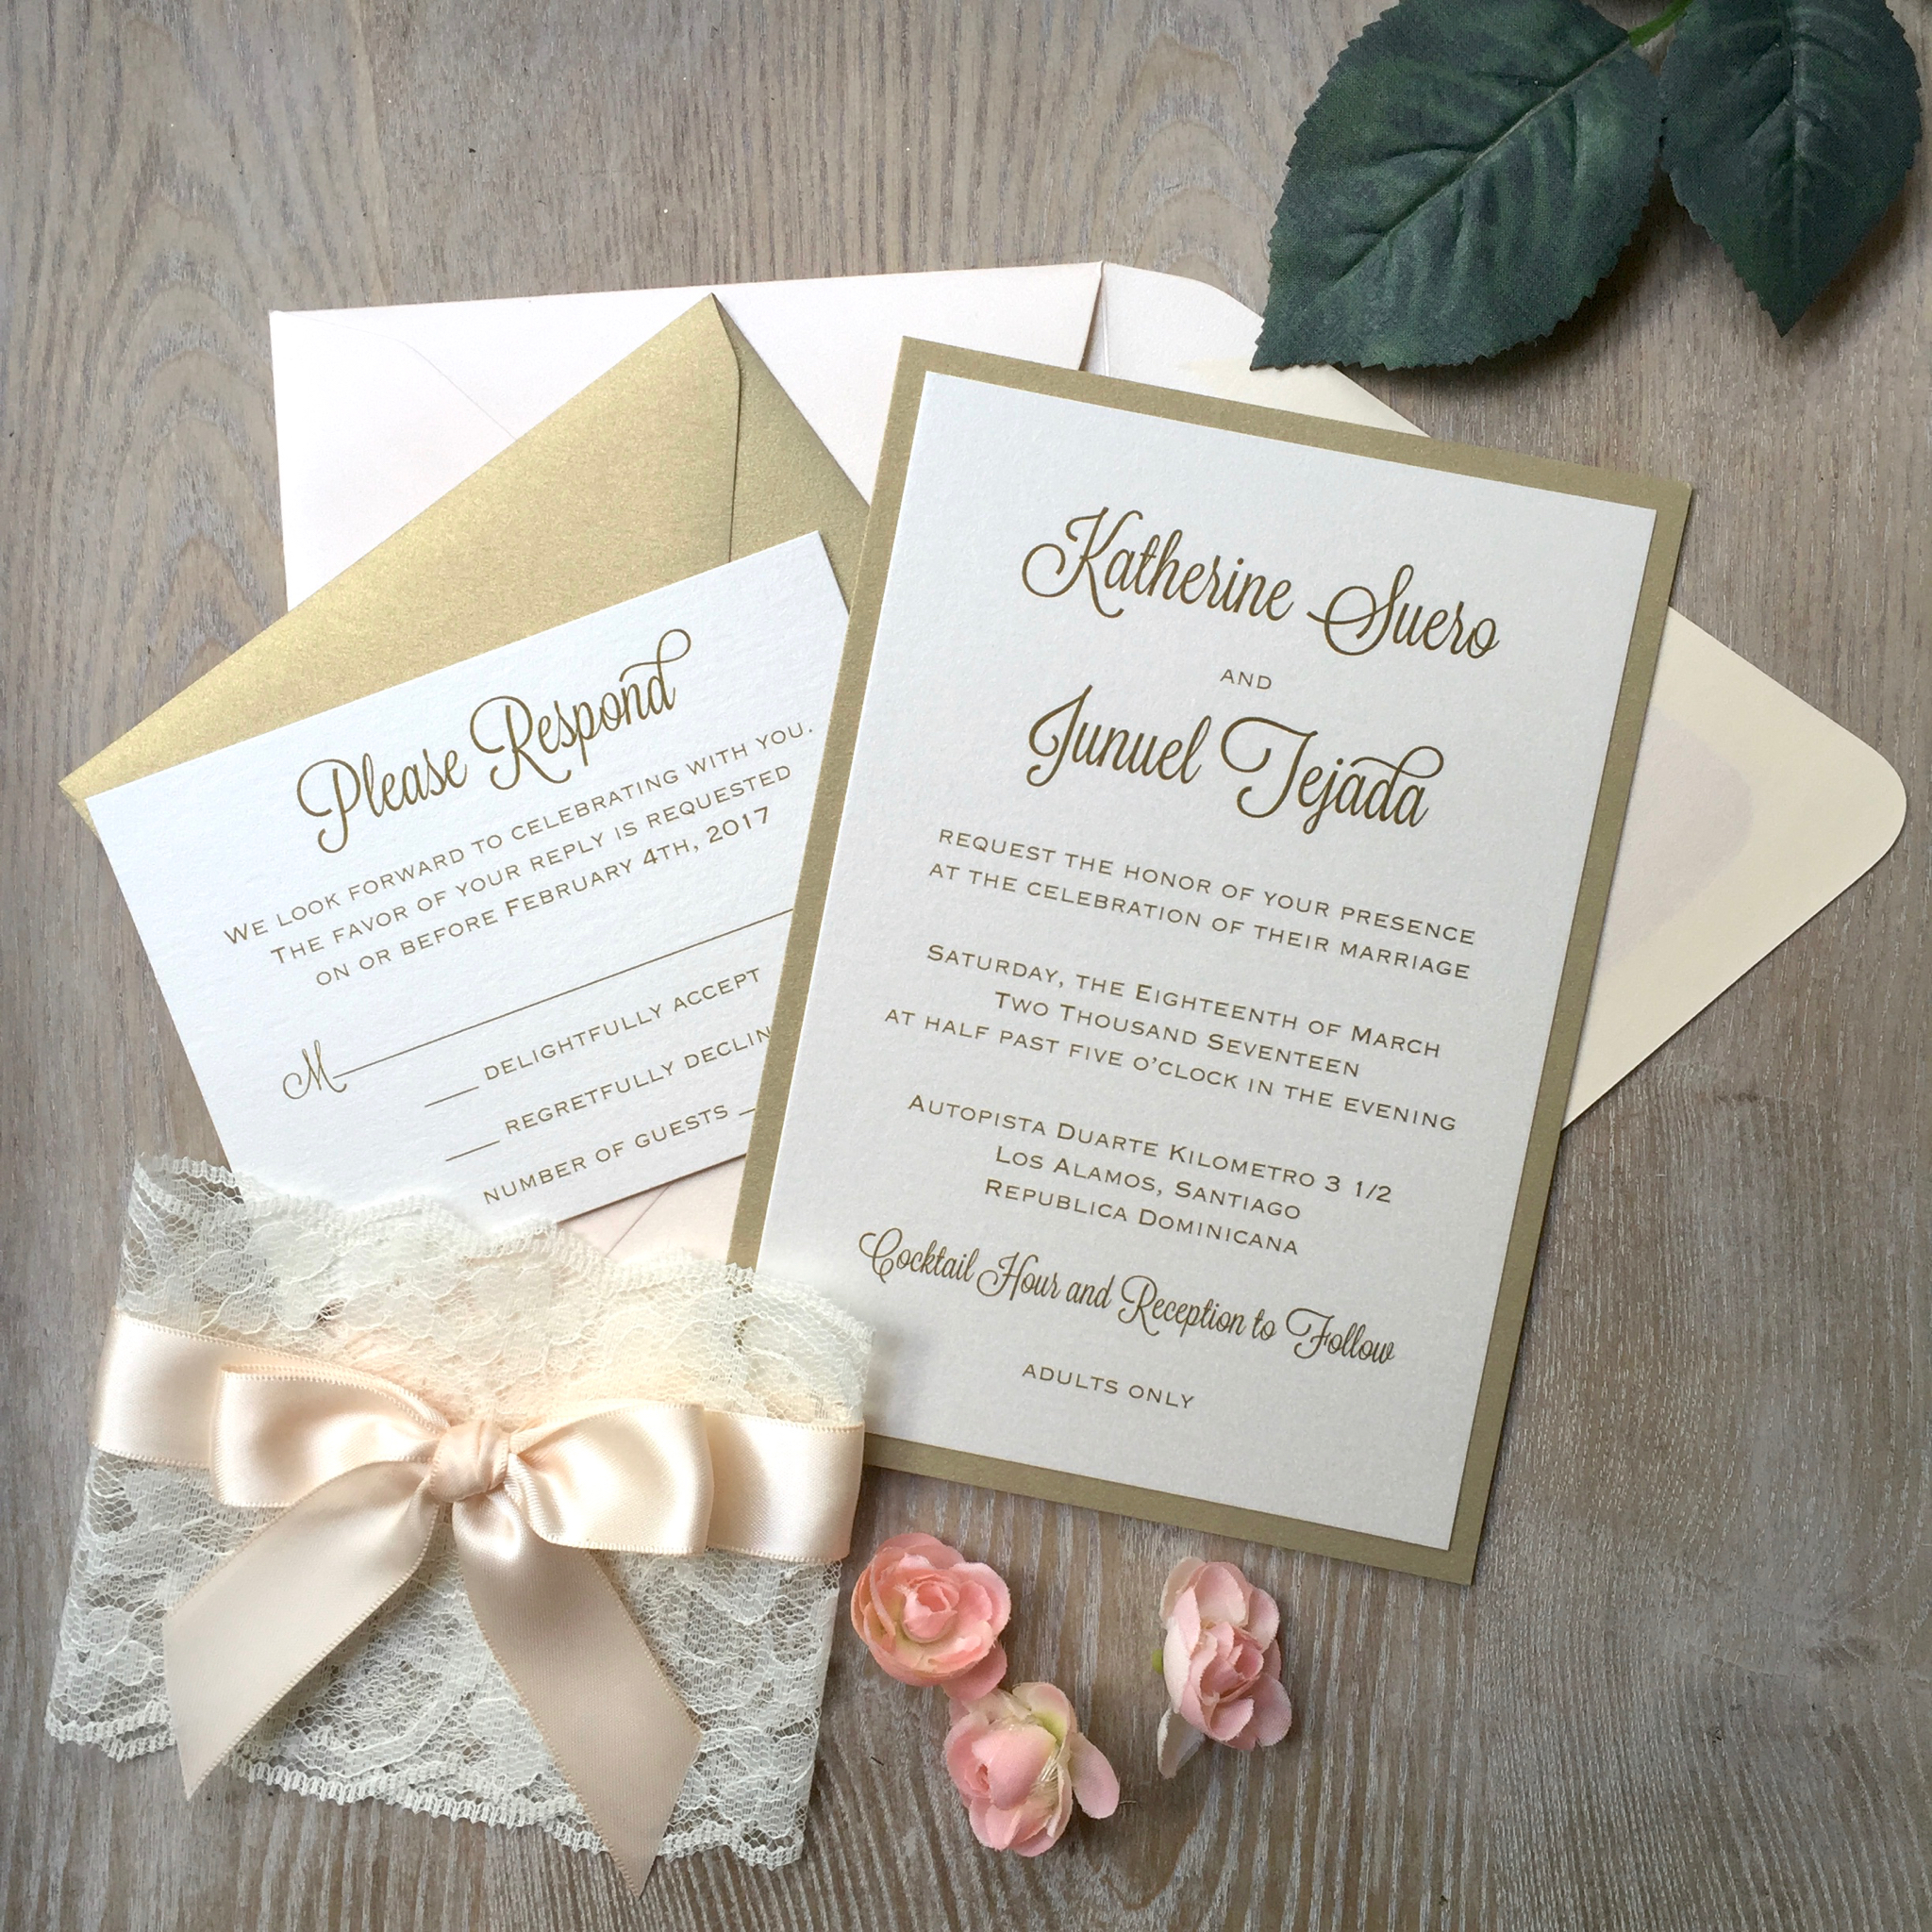 Common Wedding Invitation Mistakes | PAPER & LACE